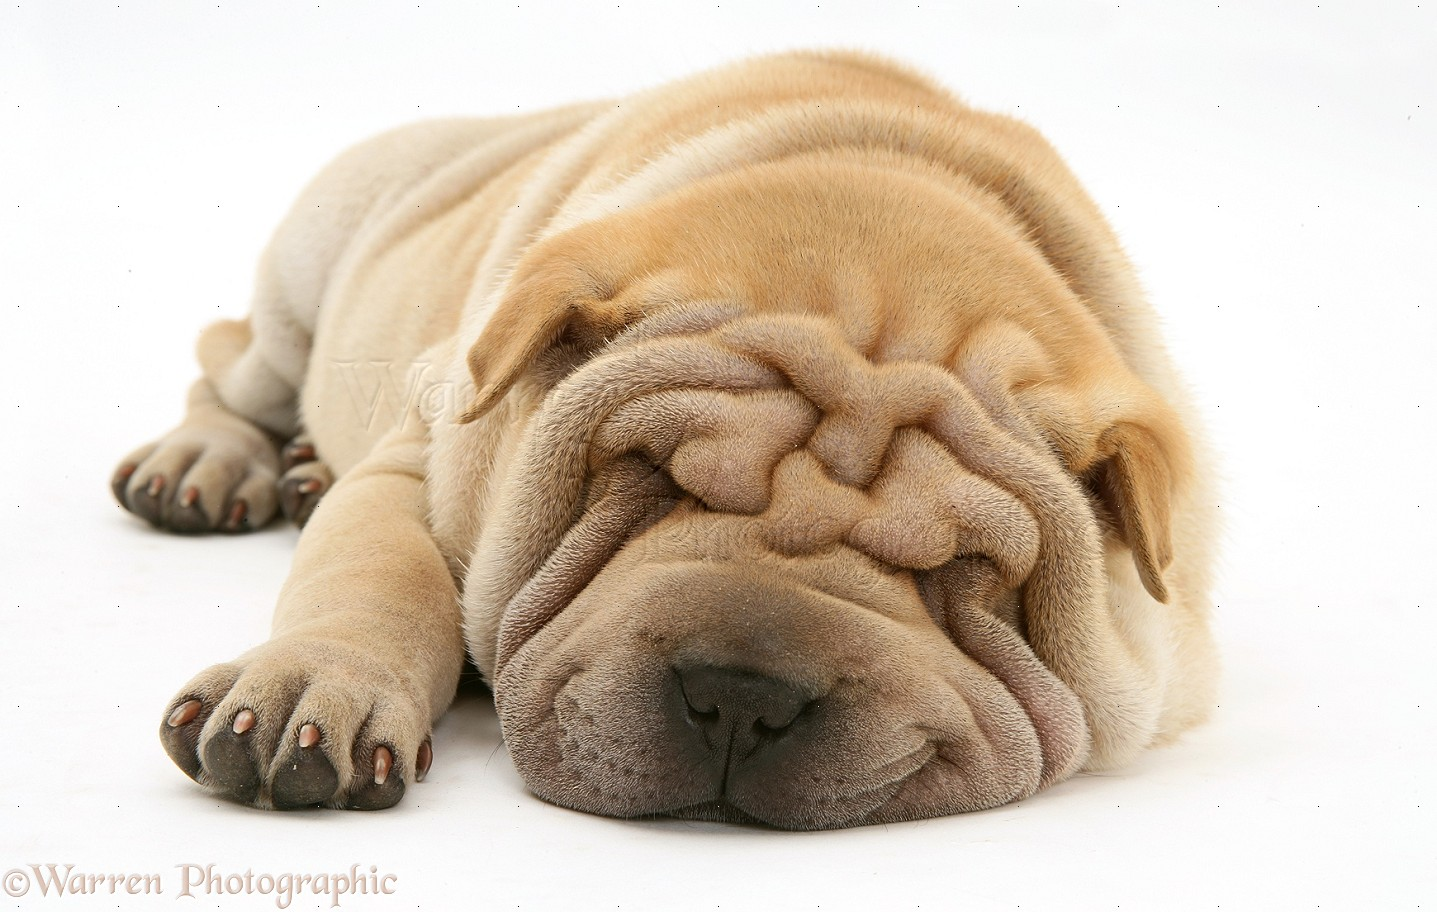 dog shar pei pup asleep photo wp15366